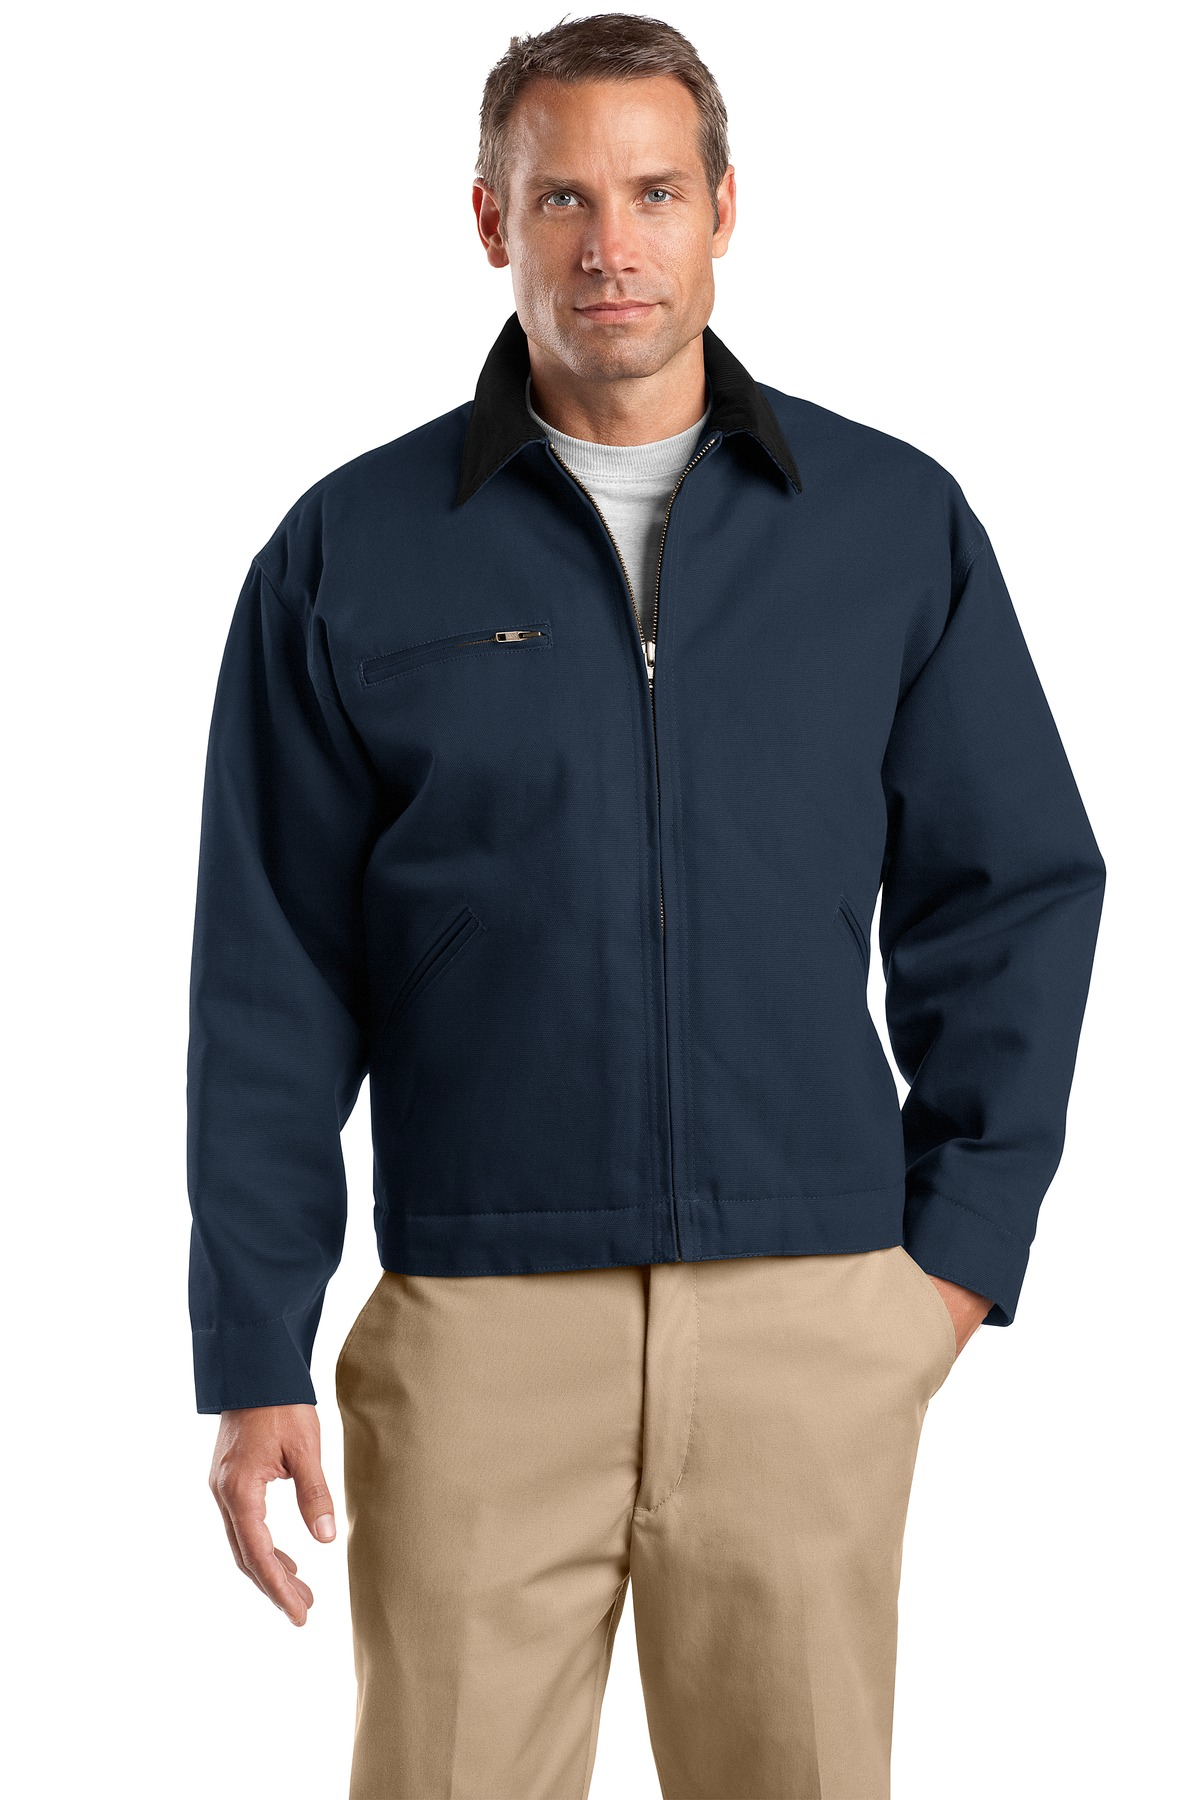 Outerwear-Work-Jackets-7